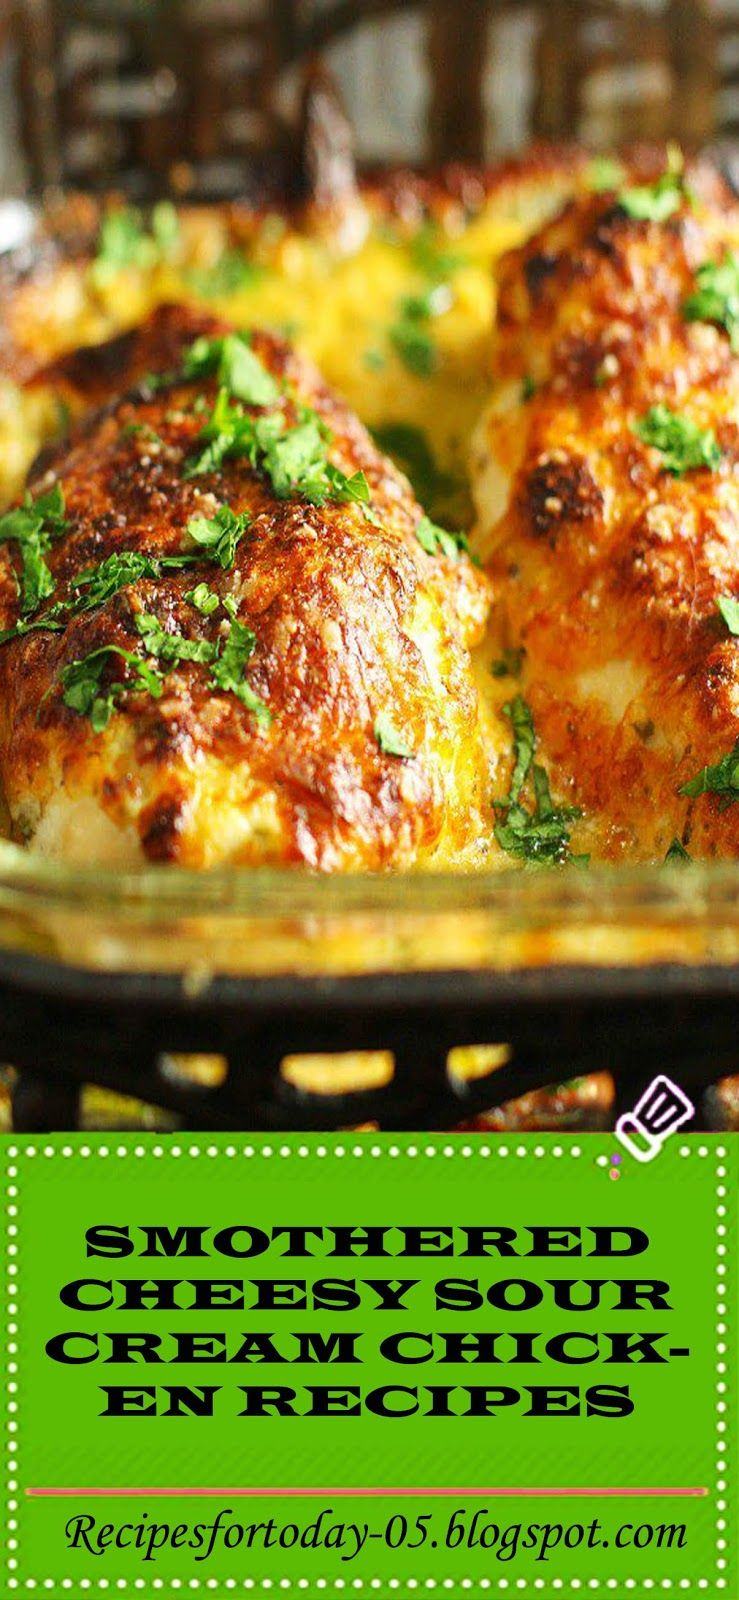 Smothered Cheesy Sour Cream Chicken Recipes Di 2020 Resep Makanan Resep Ayam Makanan